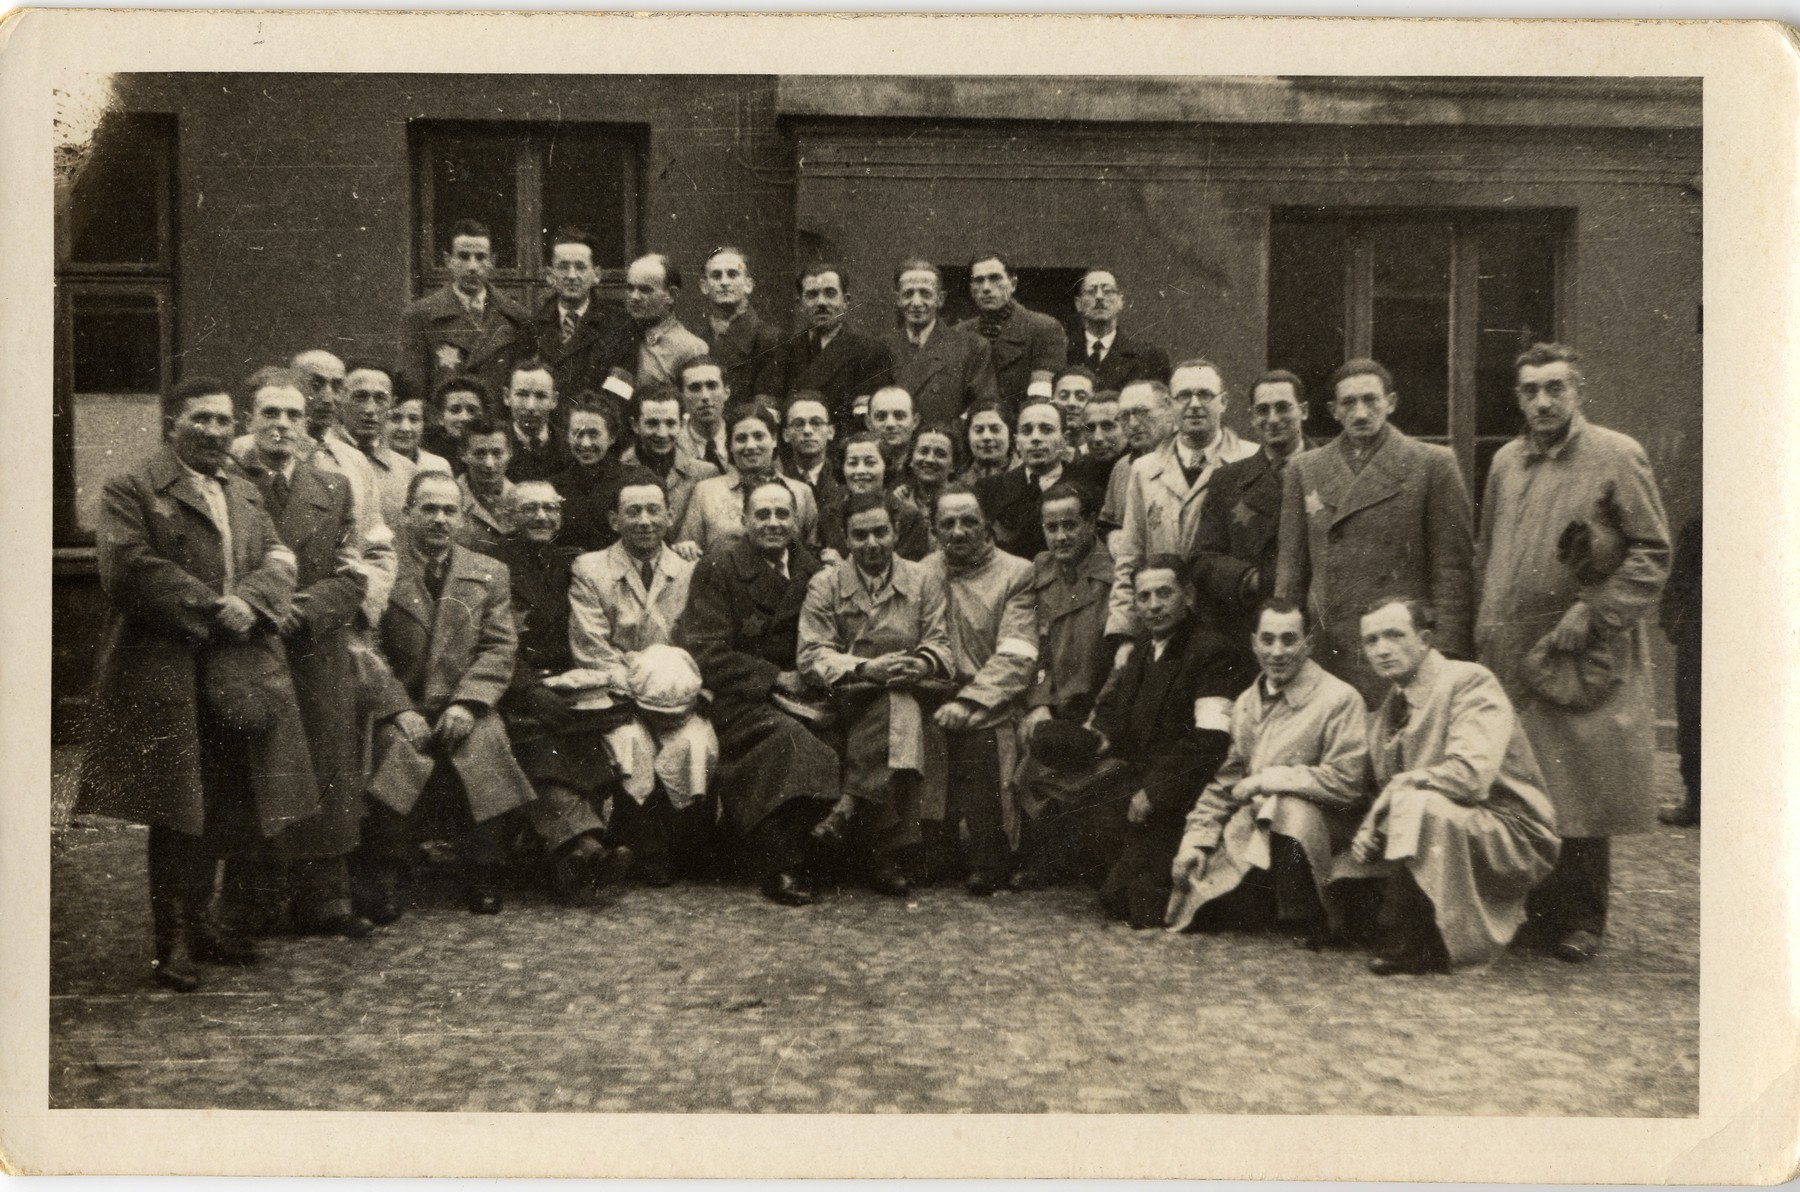 Group portrait of the employees of the leather workshop in the Lodz ghetto.  Among those pictured is Leon Fajtlowicz (third from right in the second row from the bottom).  He was the uncle of the donor and in charge of all the leather workshops in the ghetto.